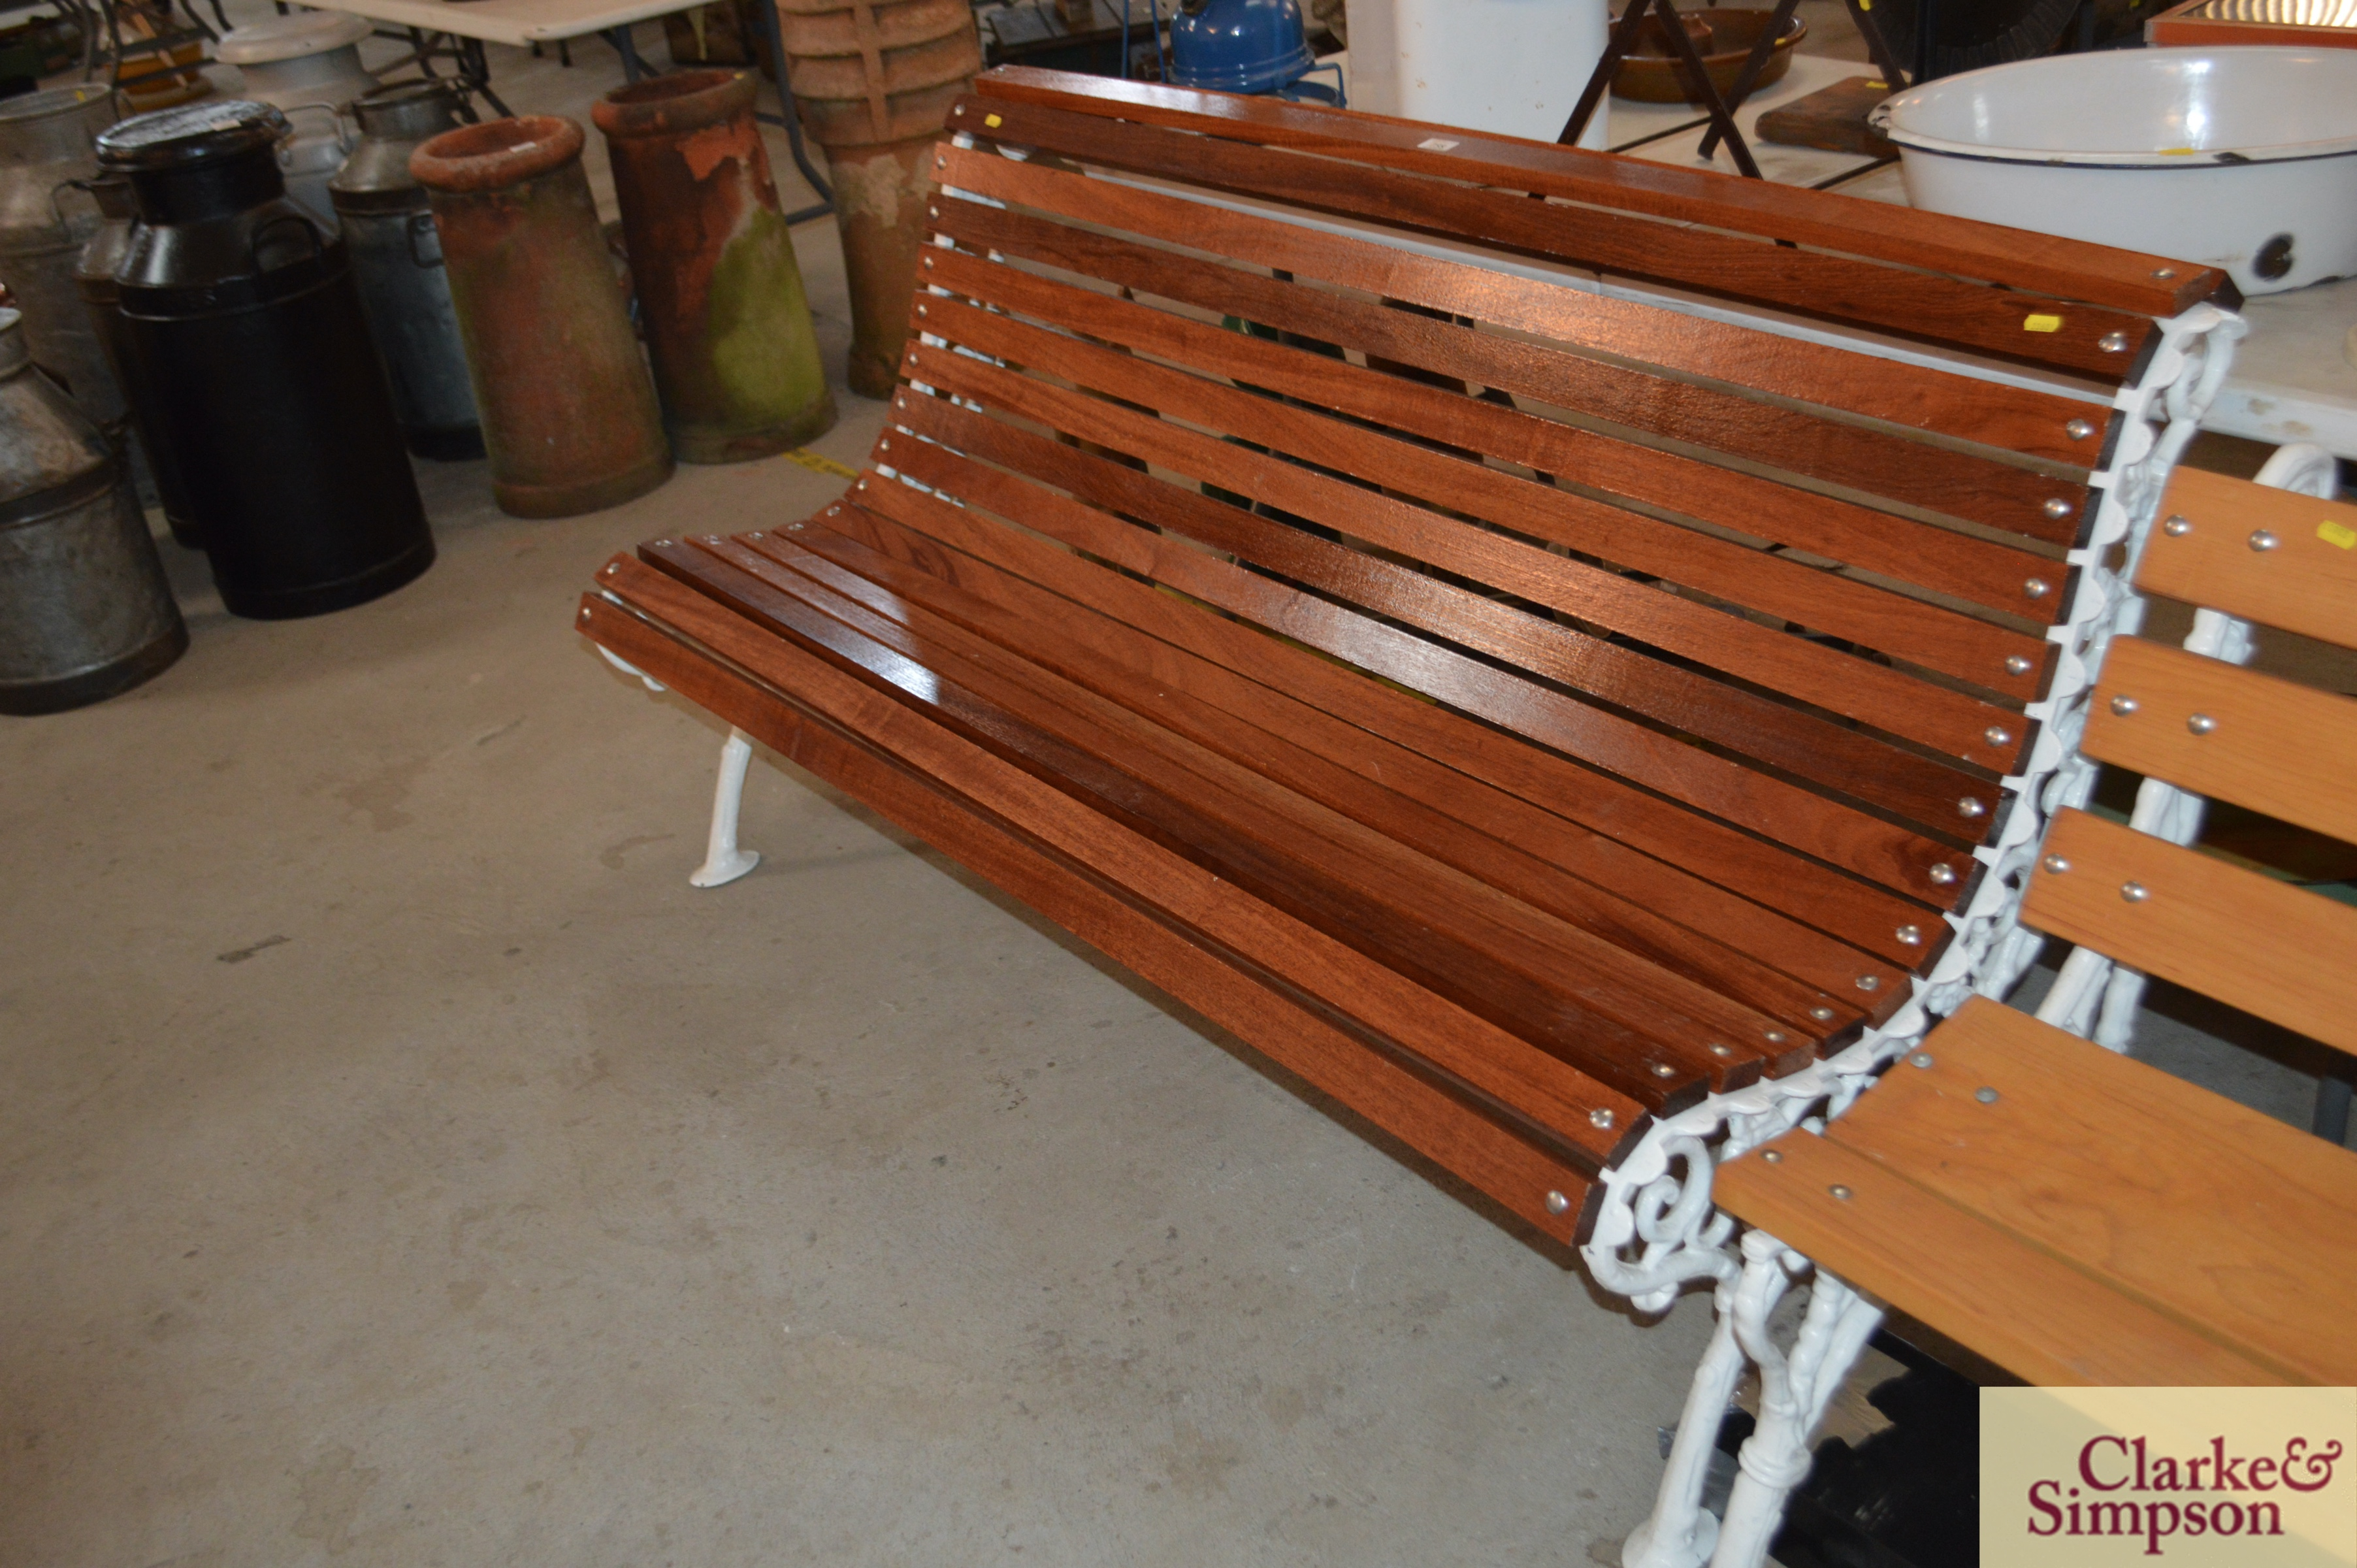 An ornate cast iron and teak slatted roll top benc - Image 2 of 4